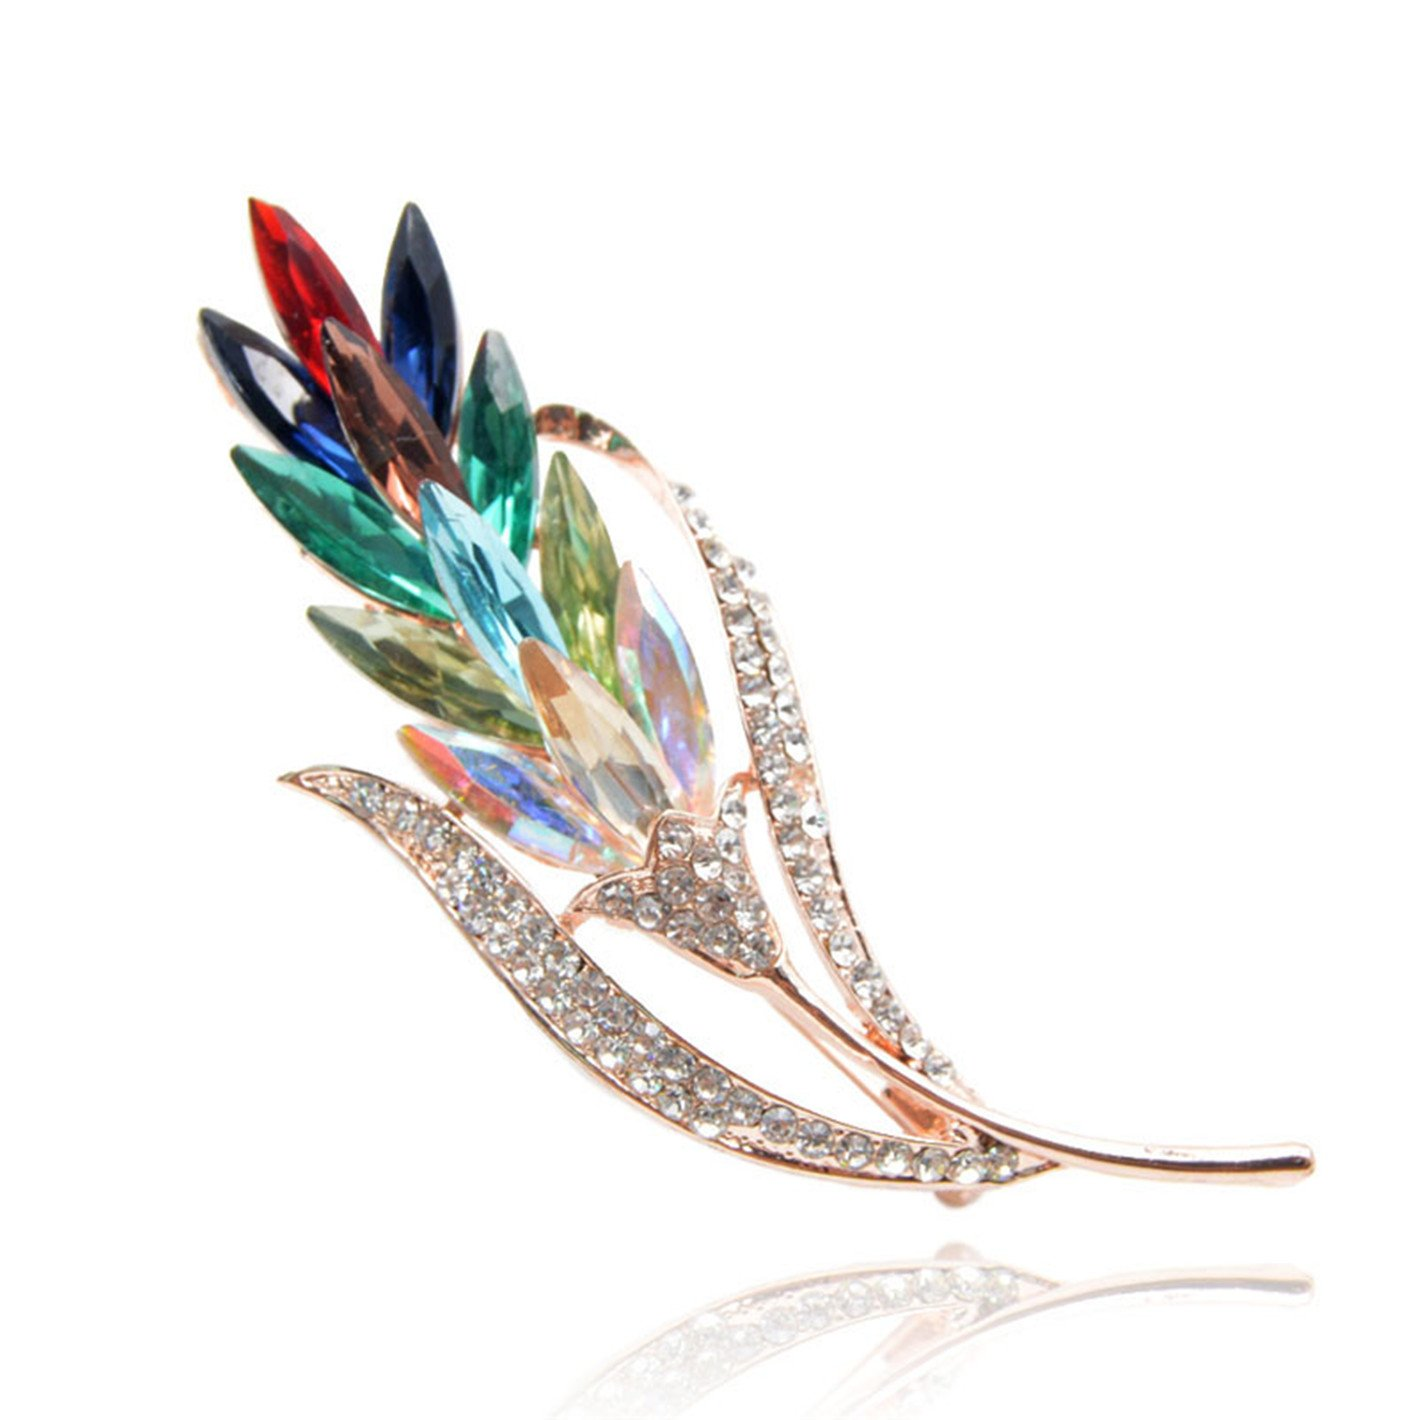 Multi-Color Crystal Wheat Brooches for Women Rhinestone Brooch Pin Fashion Jewelry Coat Dress Corsage Flo